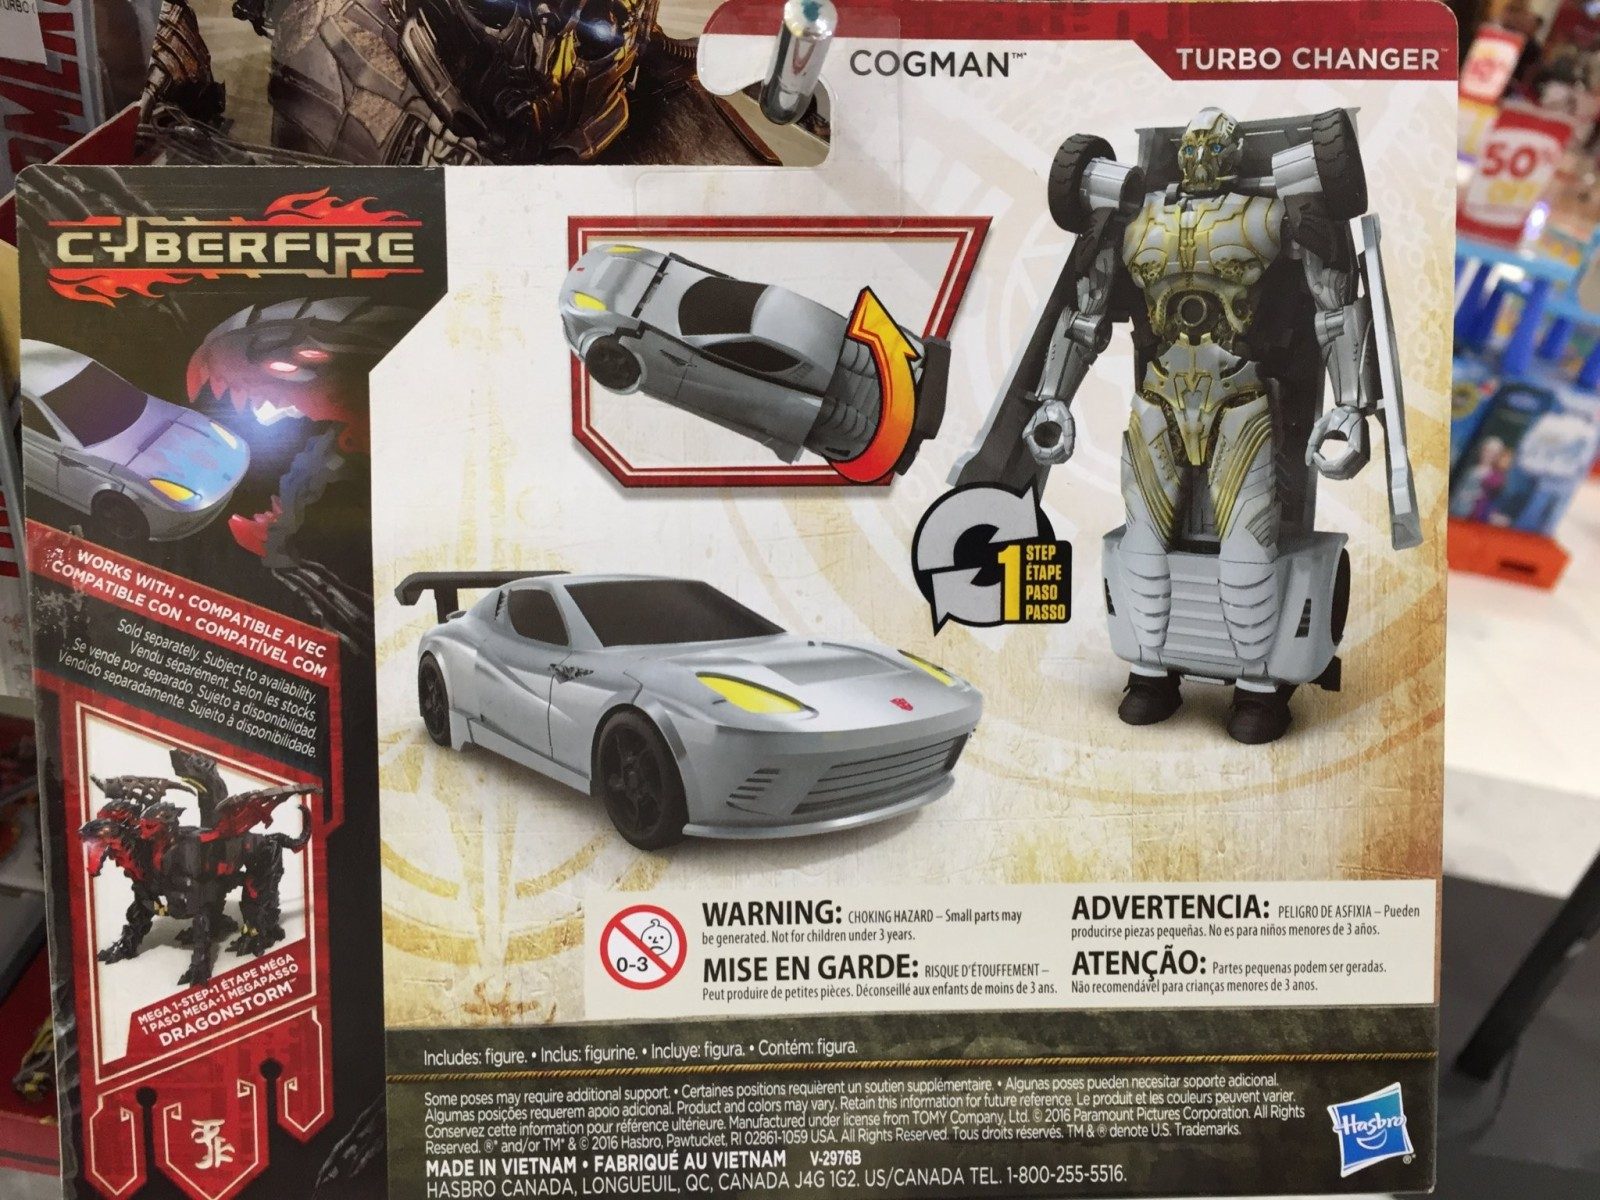 Transformers News: First Images of One Step Turbo Changer Scorn and Cogman from Transformers: The Last Knight